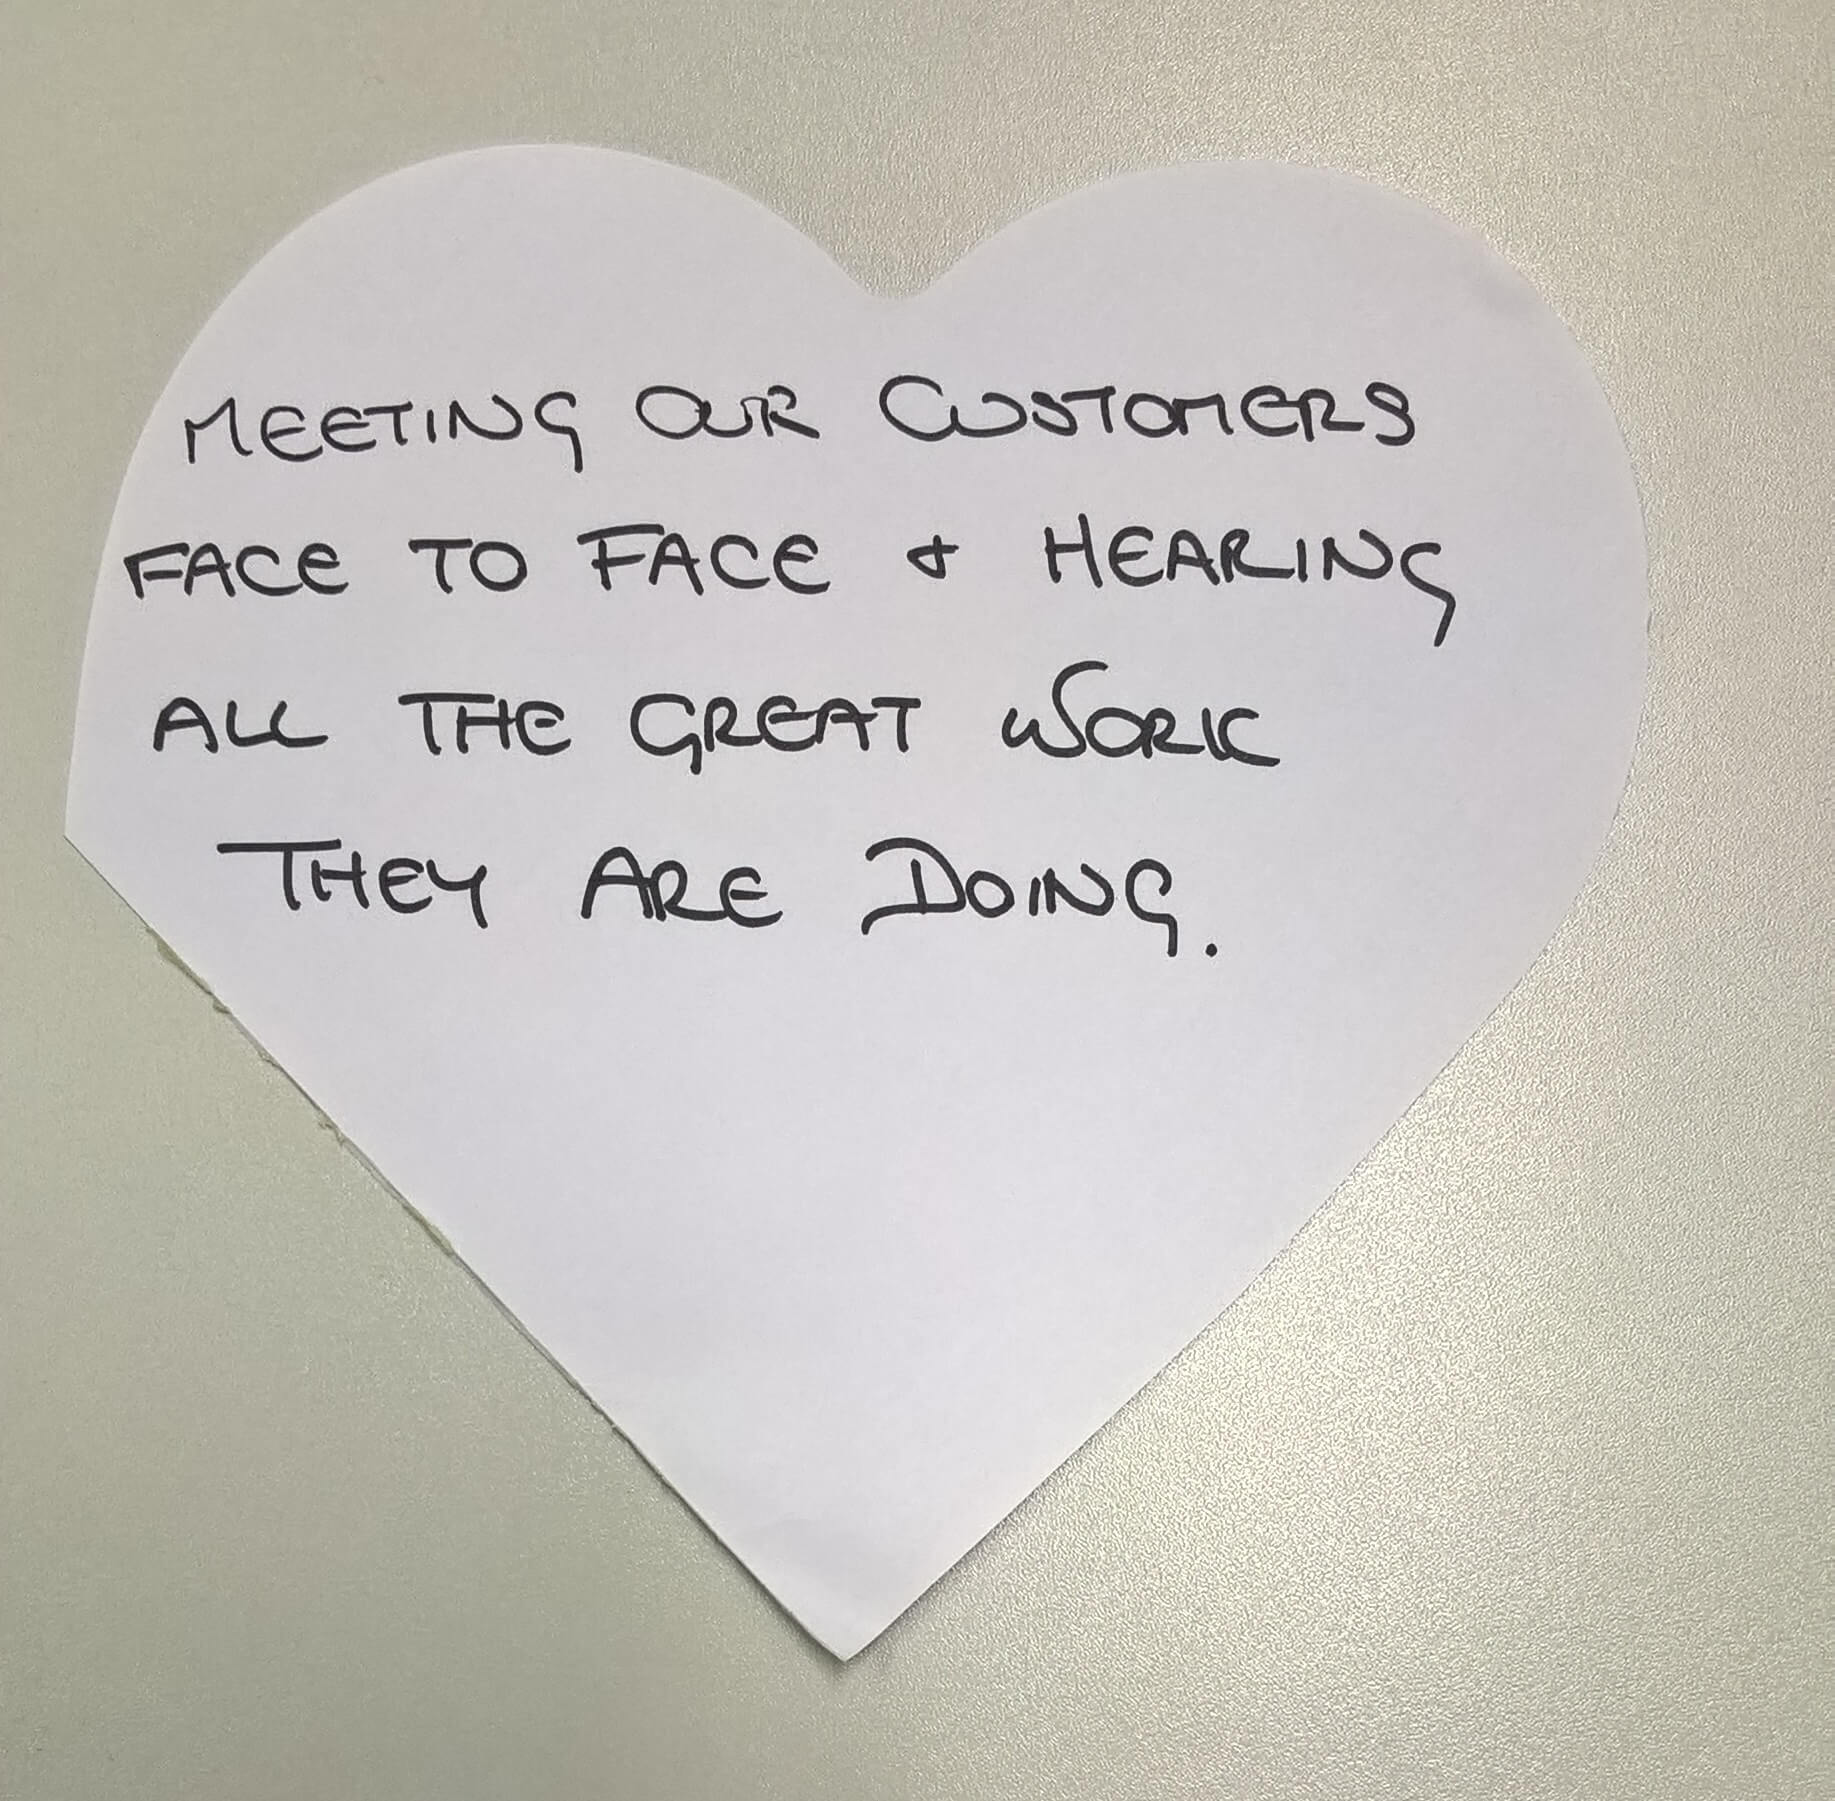 """""""Meeting our customers face-to-face and hearing all the great work they are doing."""""""